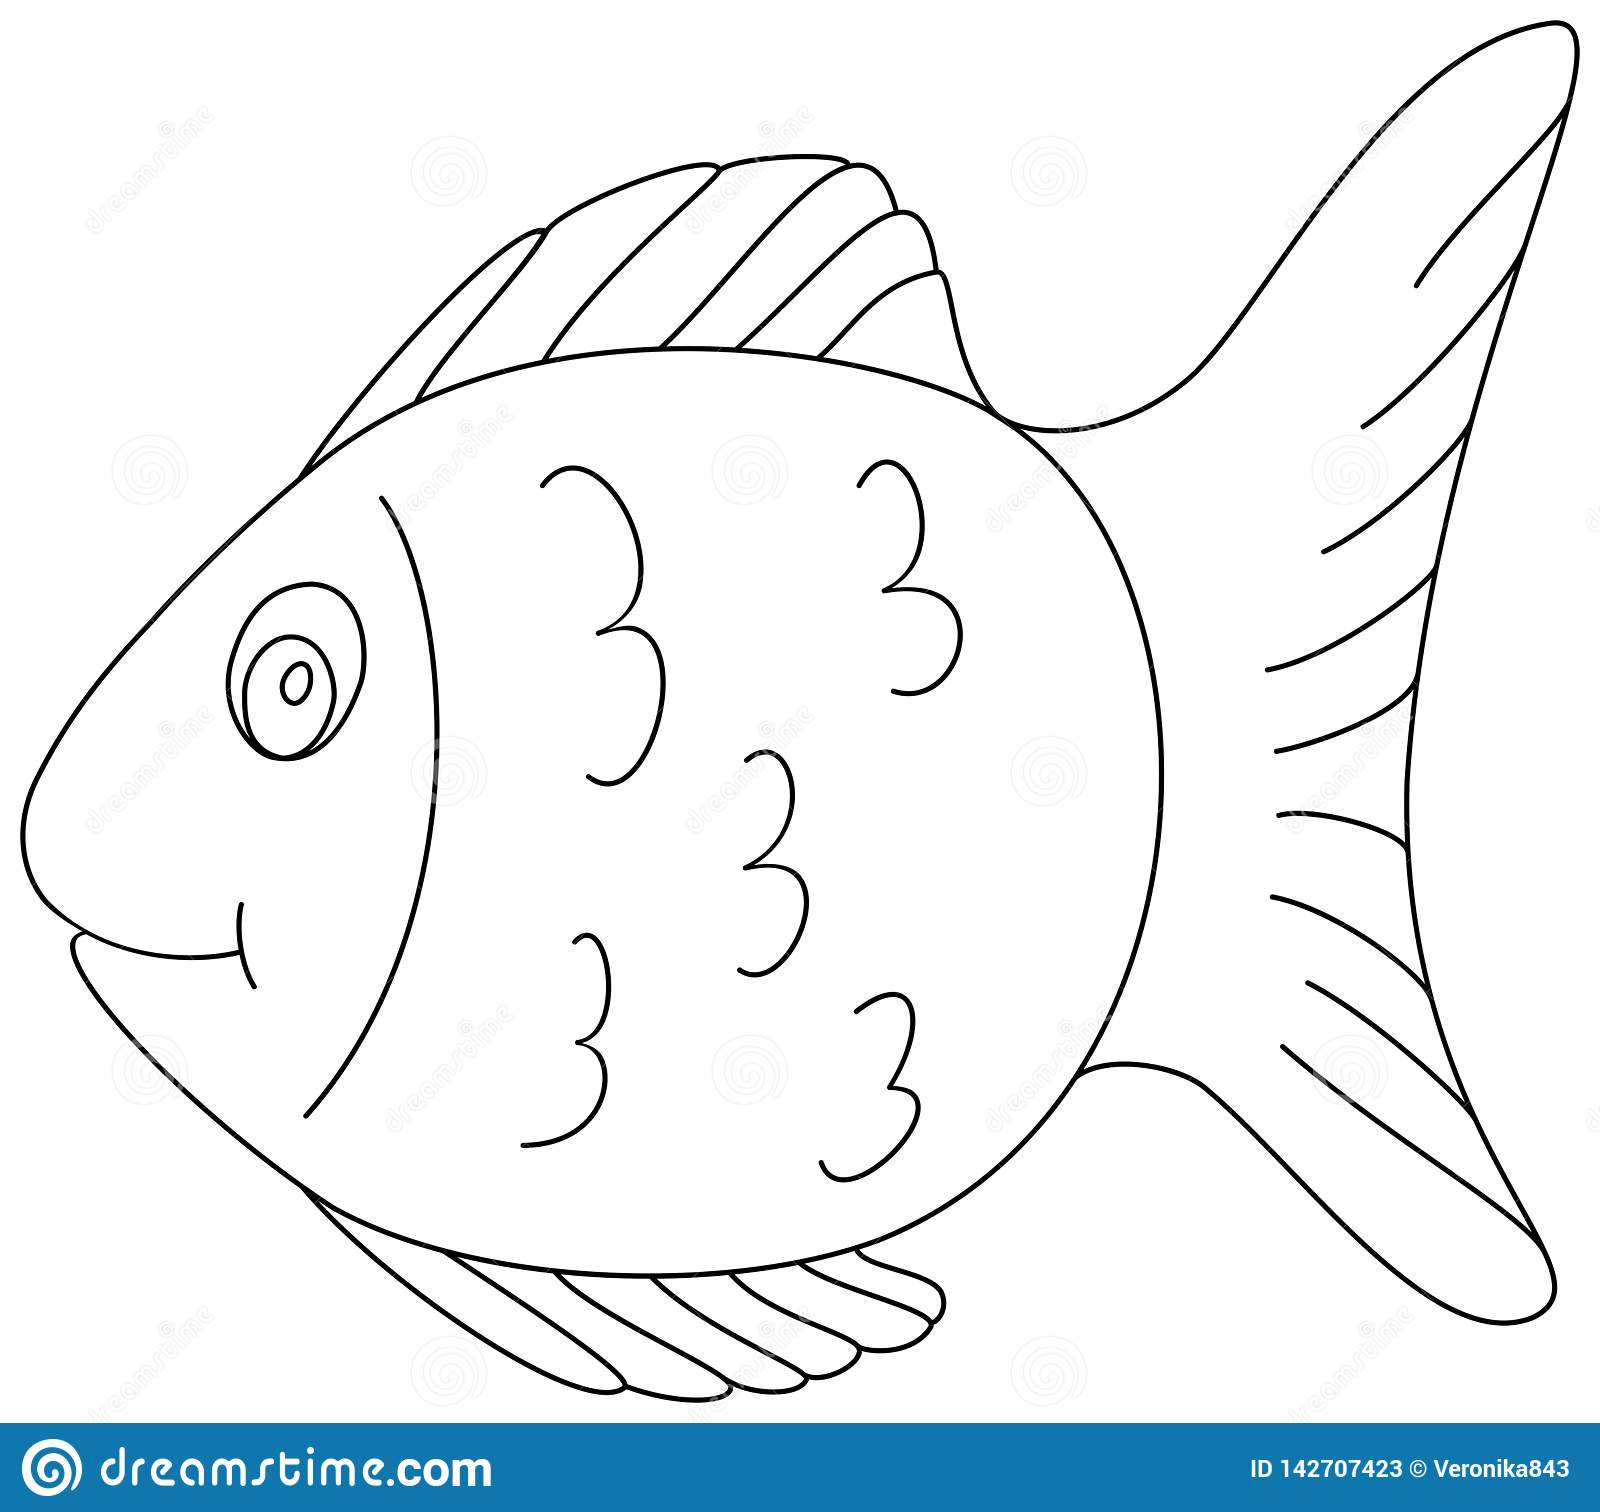 - Fish Coloring Book Page 2. Outline Clipart Stock Vector